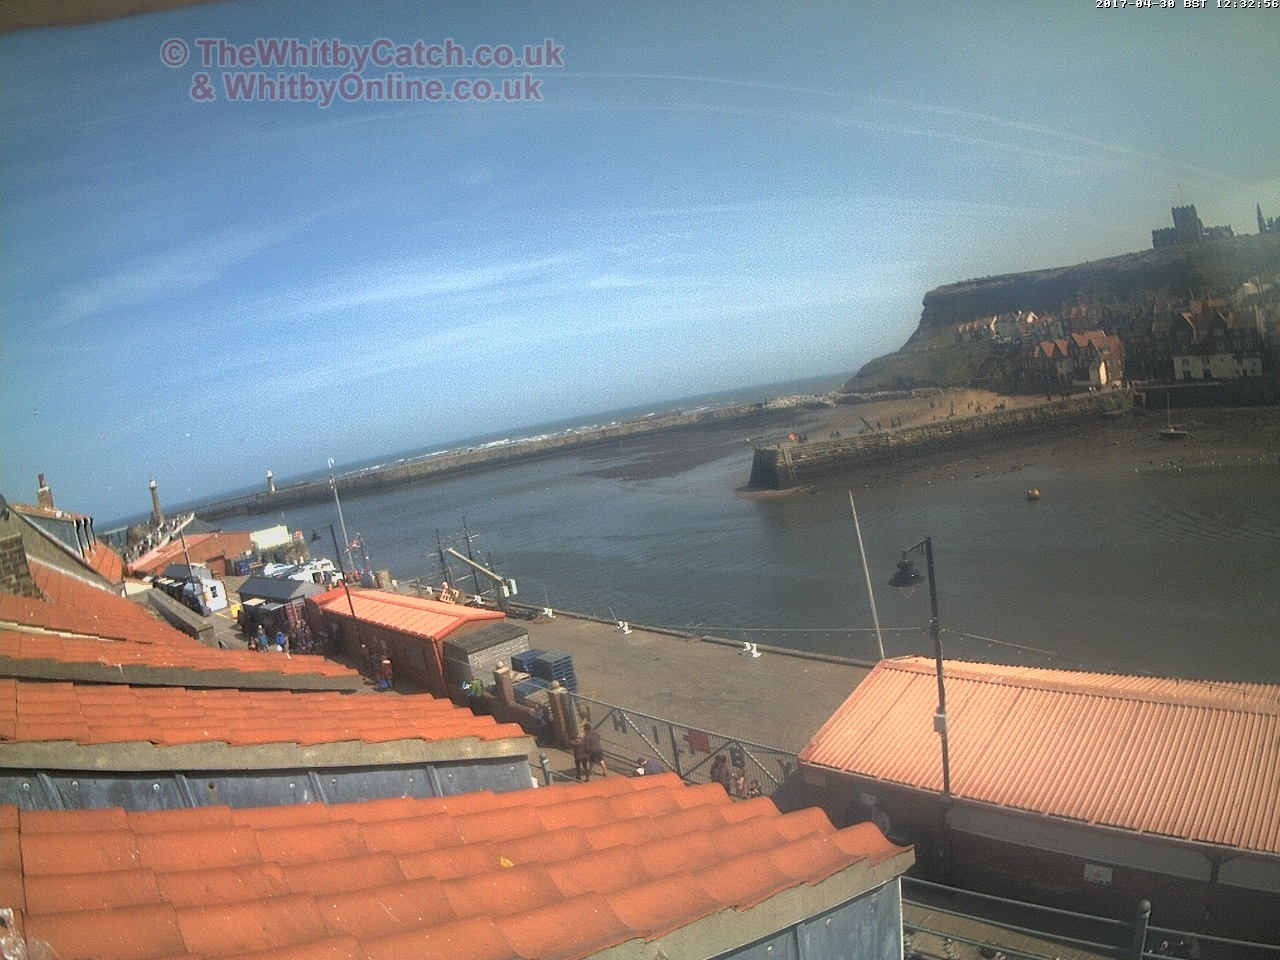 Whitby Sun 30th April 2017 12:33.